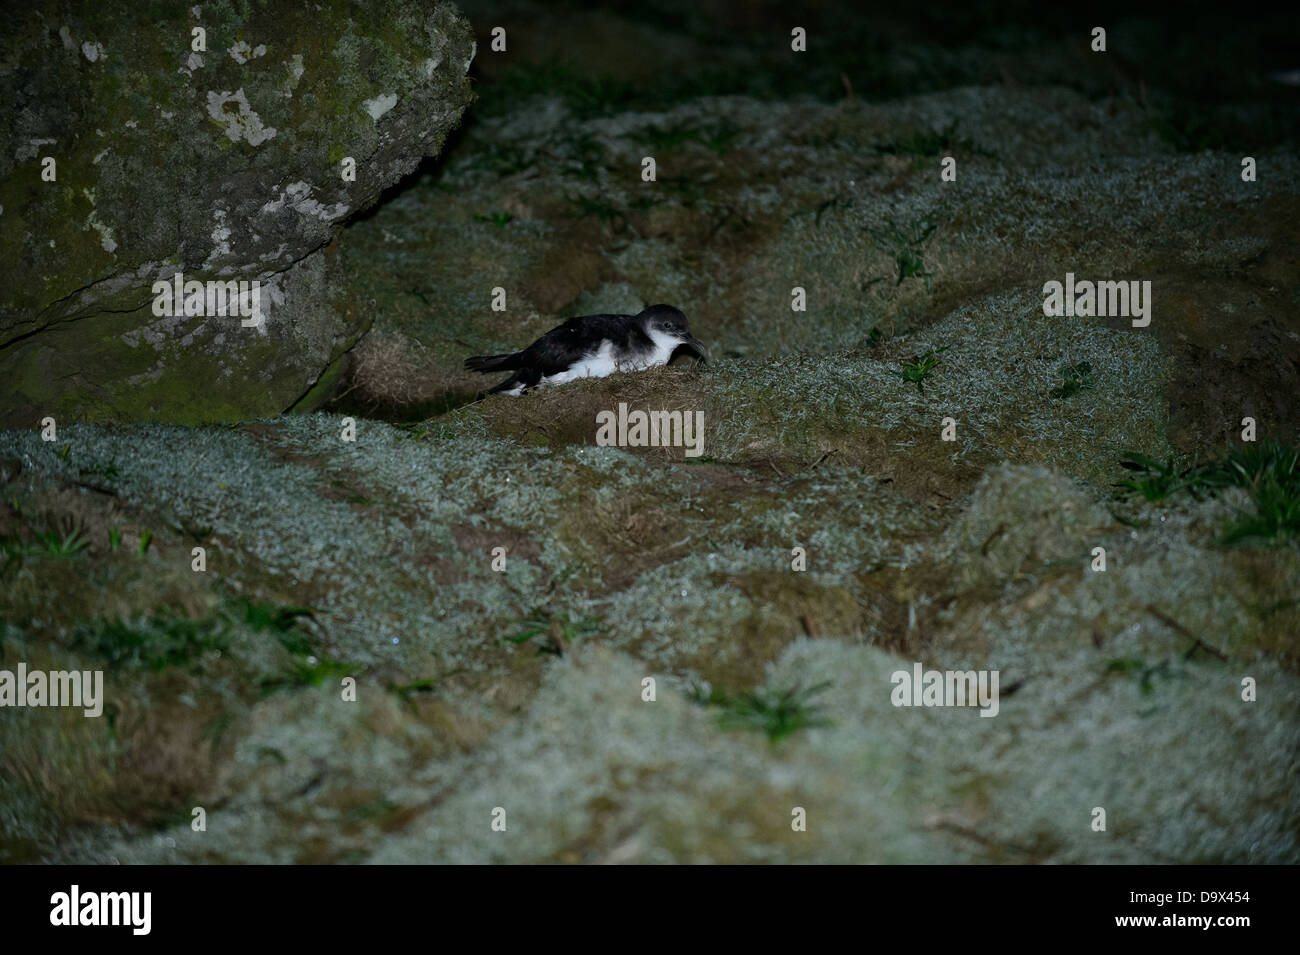 Manx Shearwaters arrive on land during dark nights on Skomer Island, Wales - Stock Image